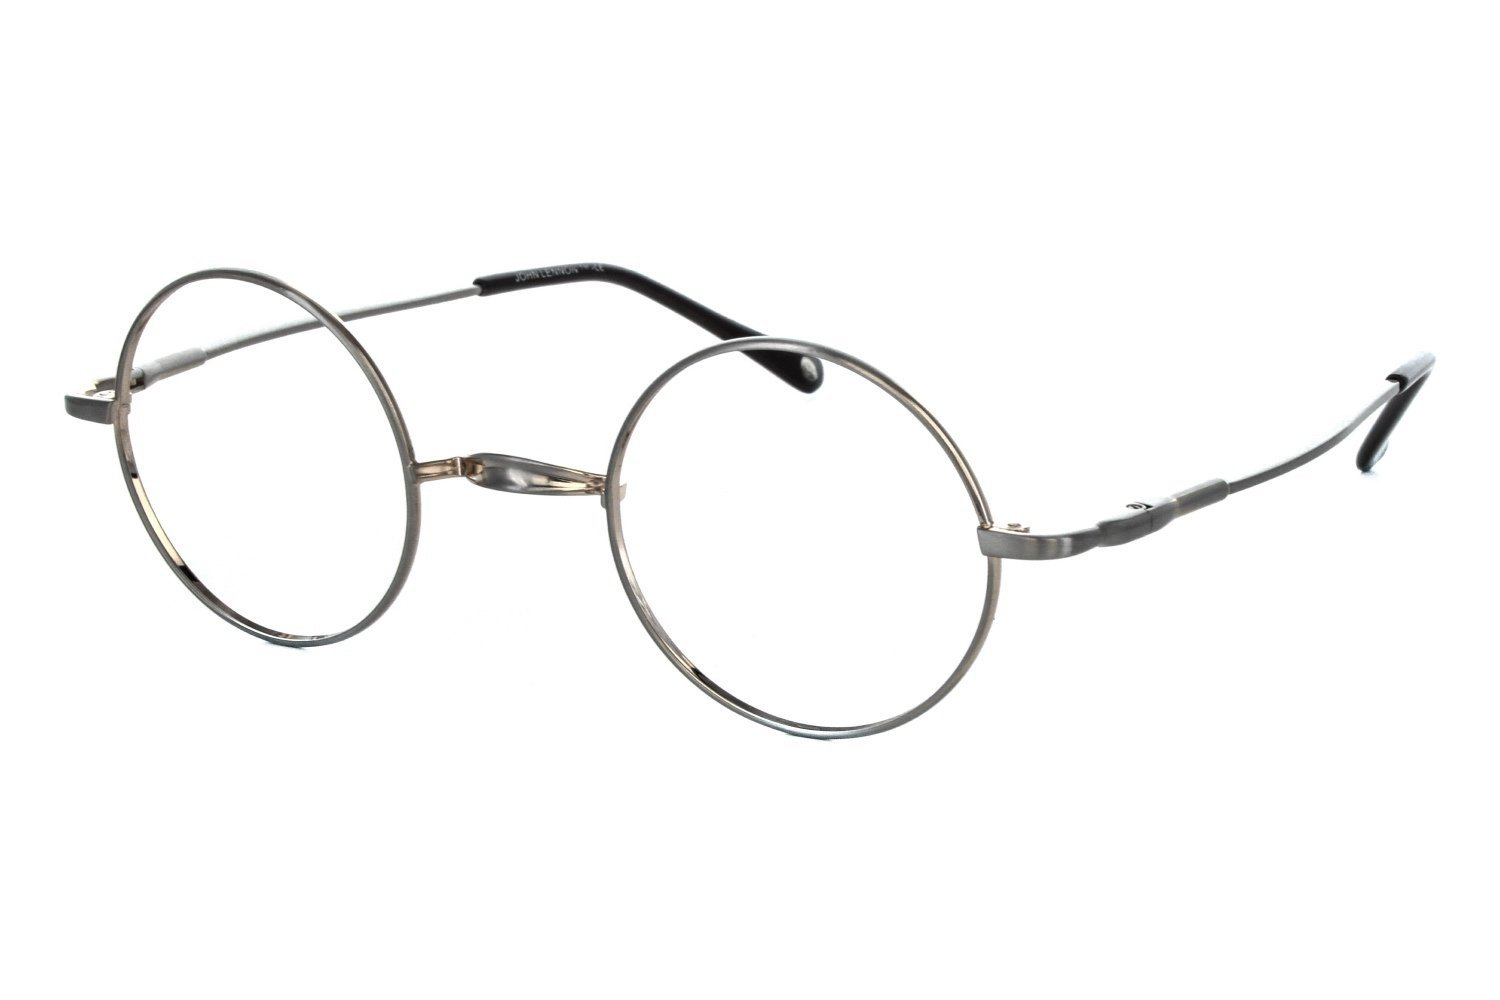 John Lennon Wheels Mens Eyeglass Frames - Silver/Gold